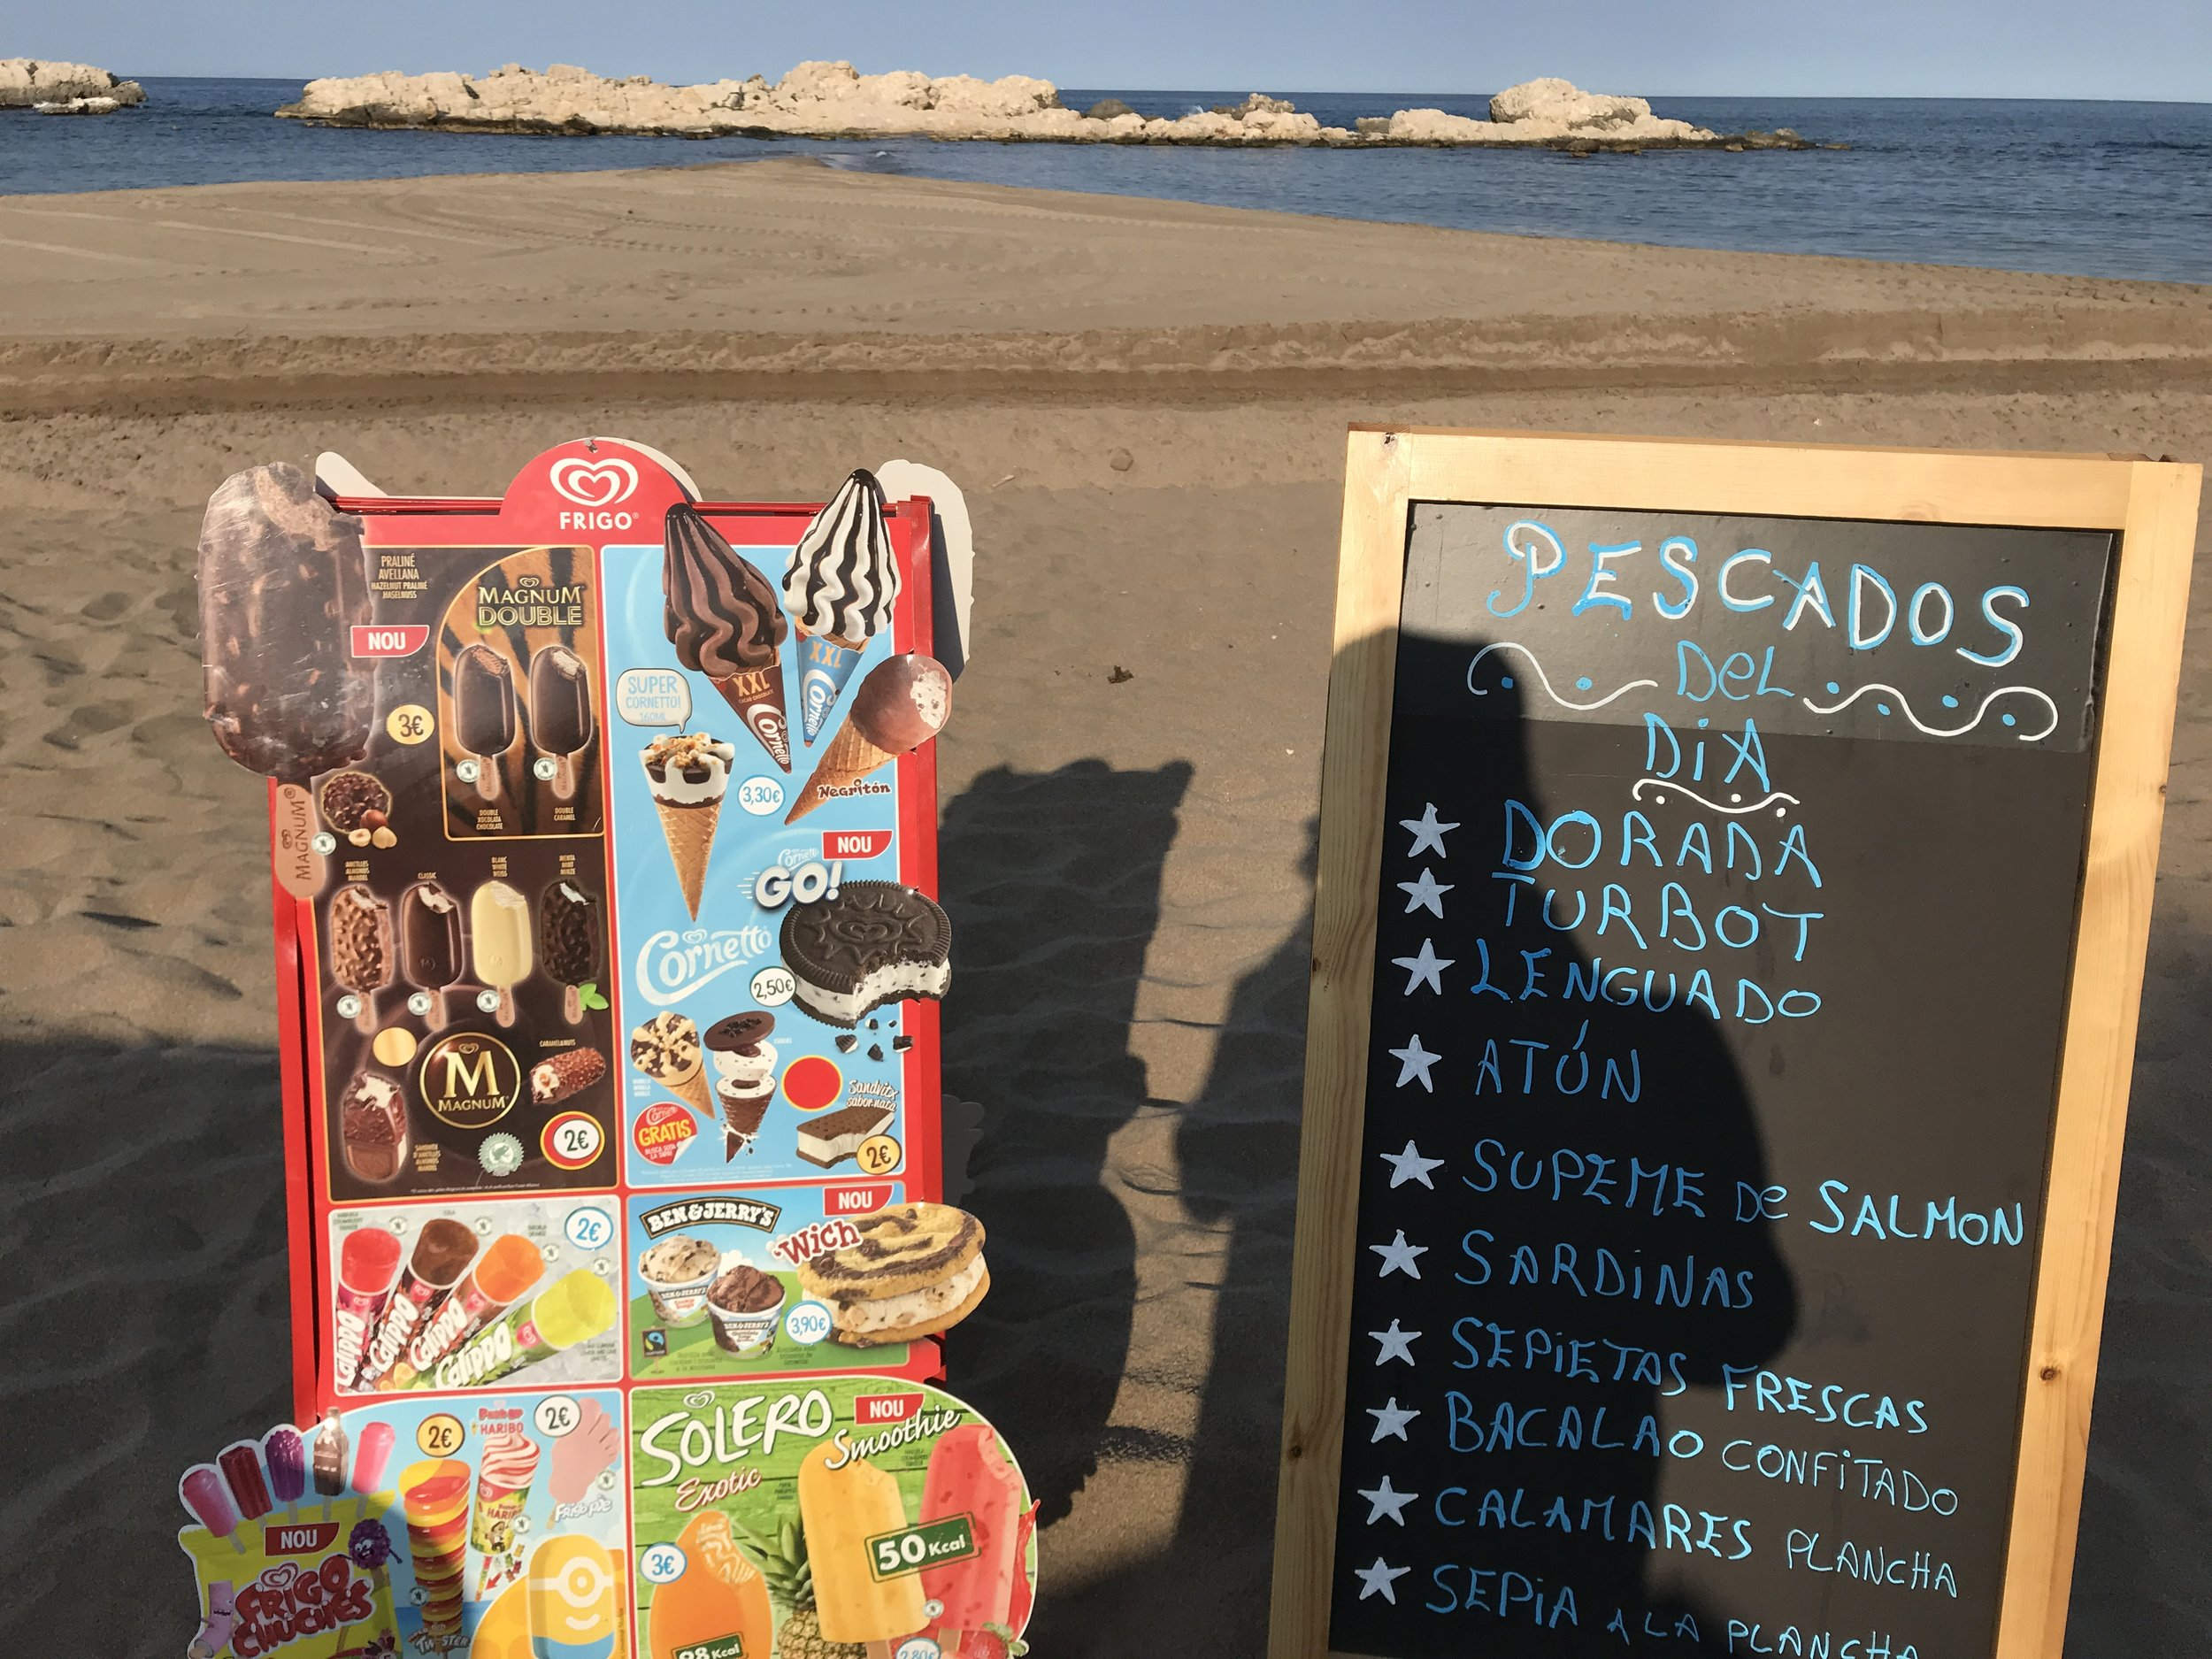 "Even in the off-season we found an open ""chiringita"" for great coffees on our favorite beach, Sant Marti d' Empuries. This is the other part of Spain where the Phoenicians, Greeks, and Romans traded and left beautiful intact ruins."